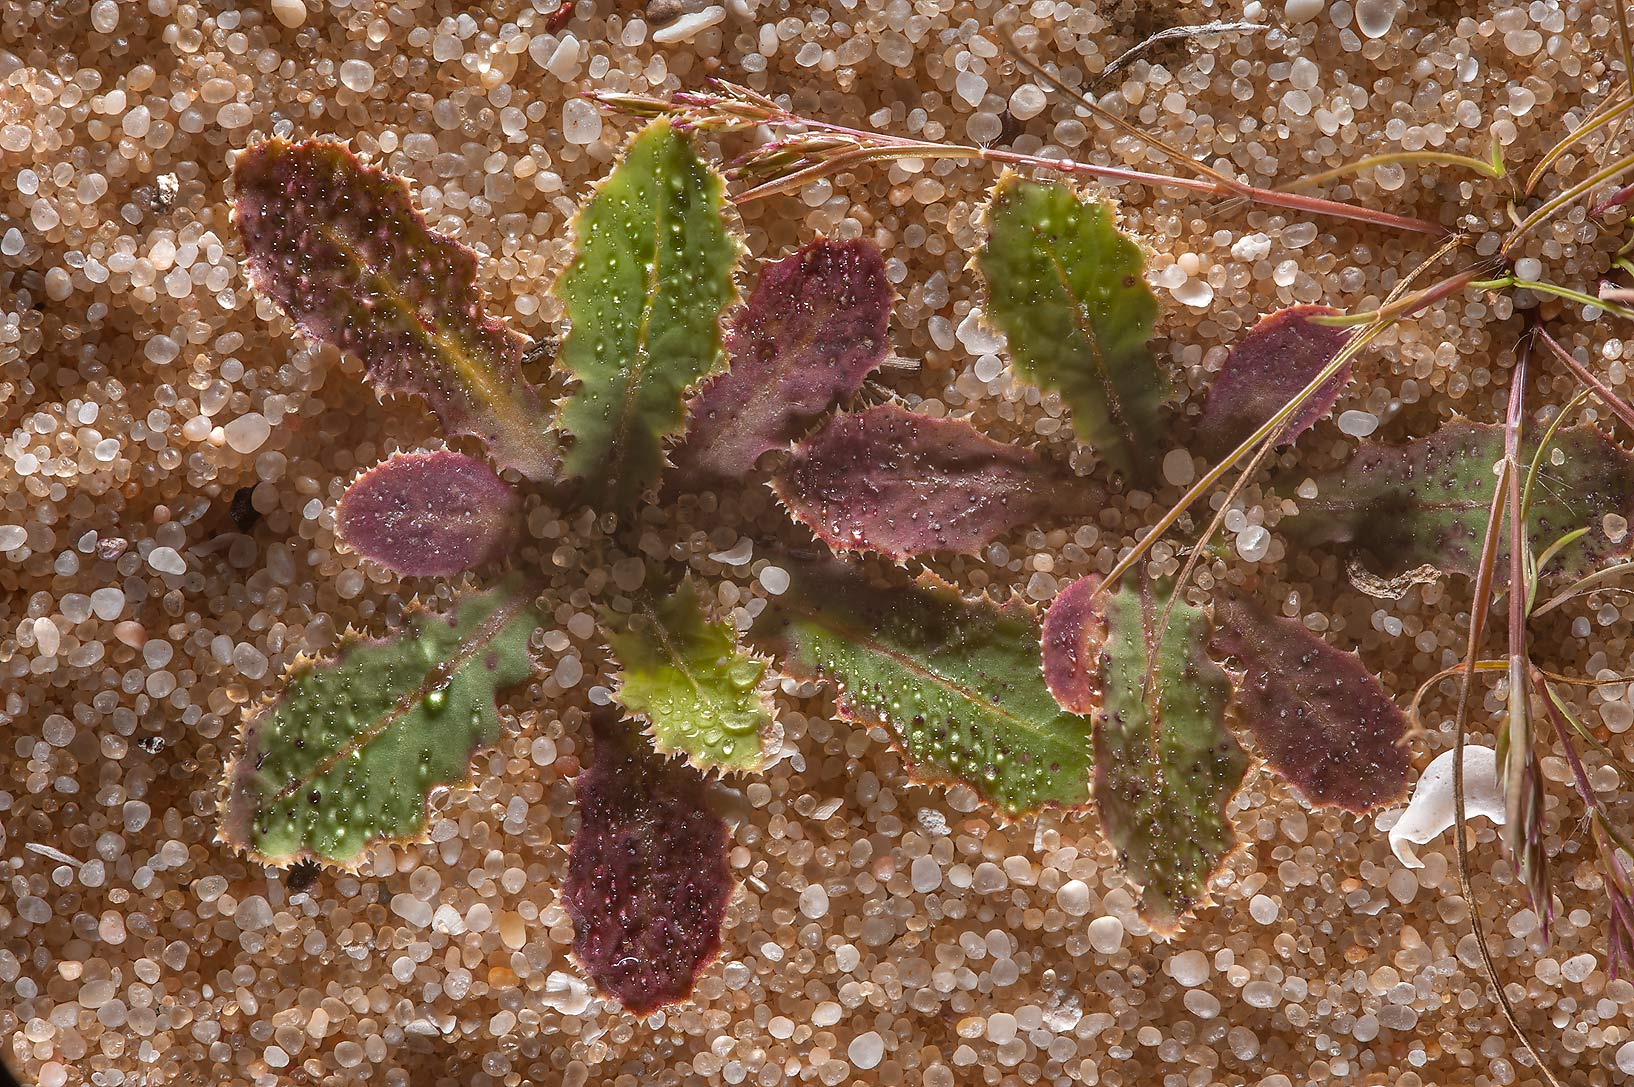 Rosettes of leaves of Launaea capitata on sand...Reserve near Abu Samra. Southern Qatar